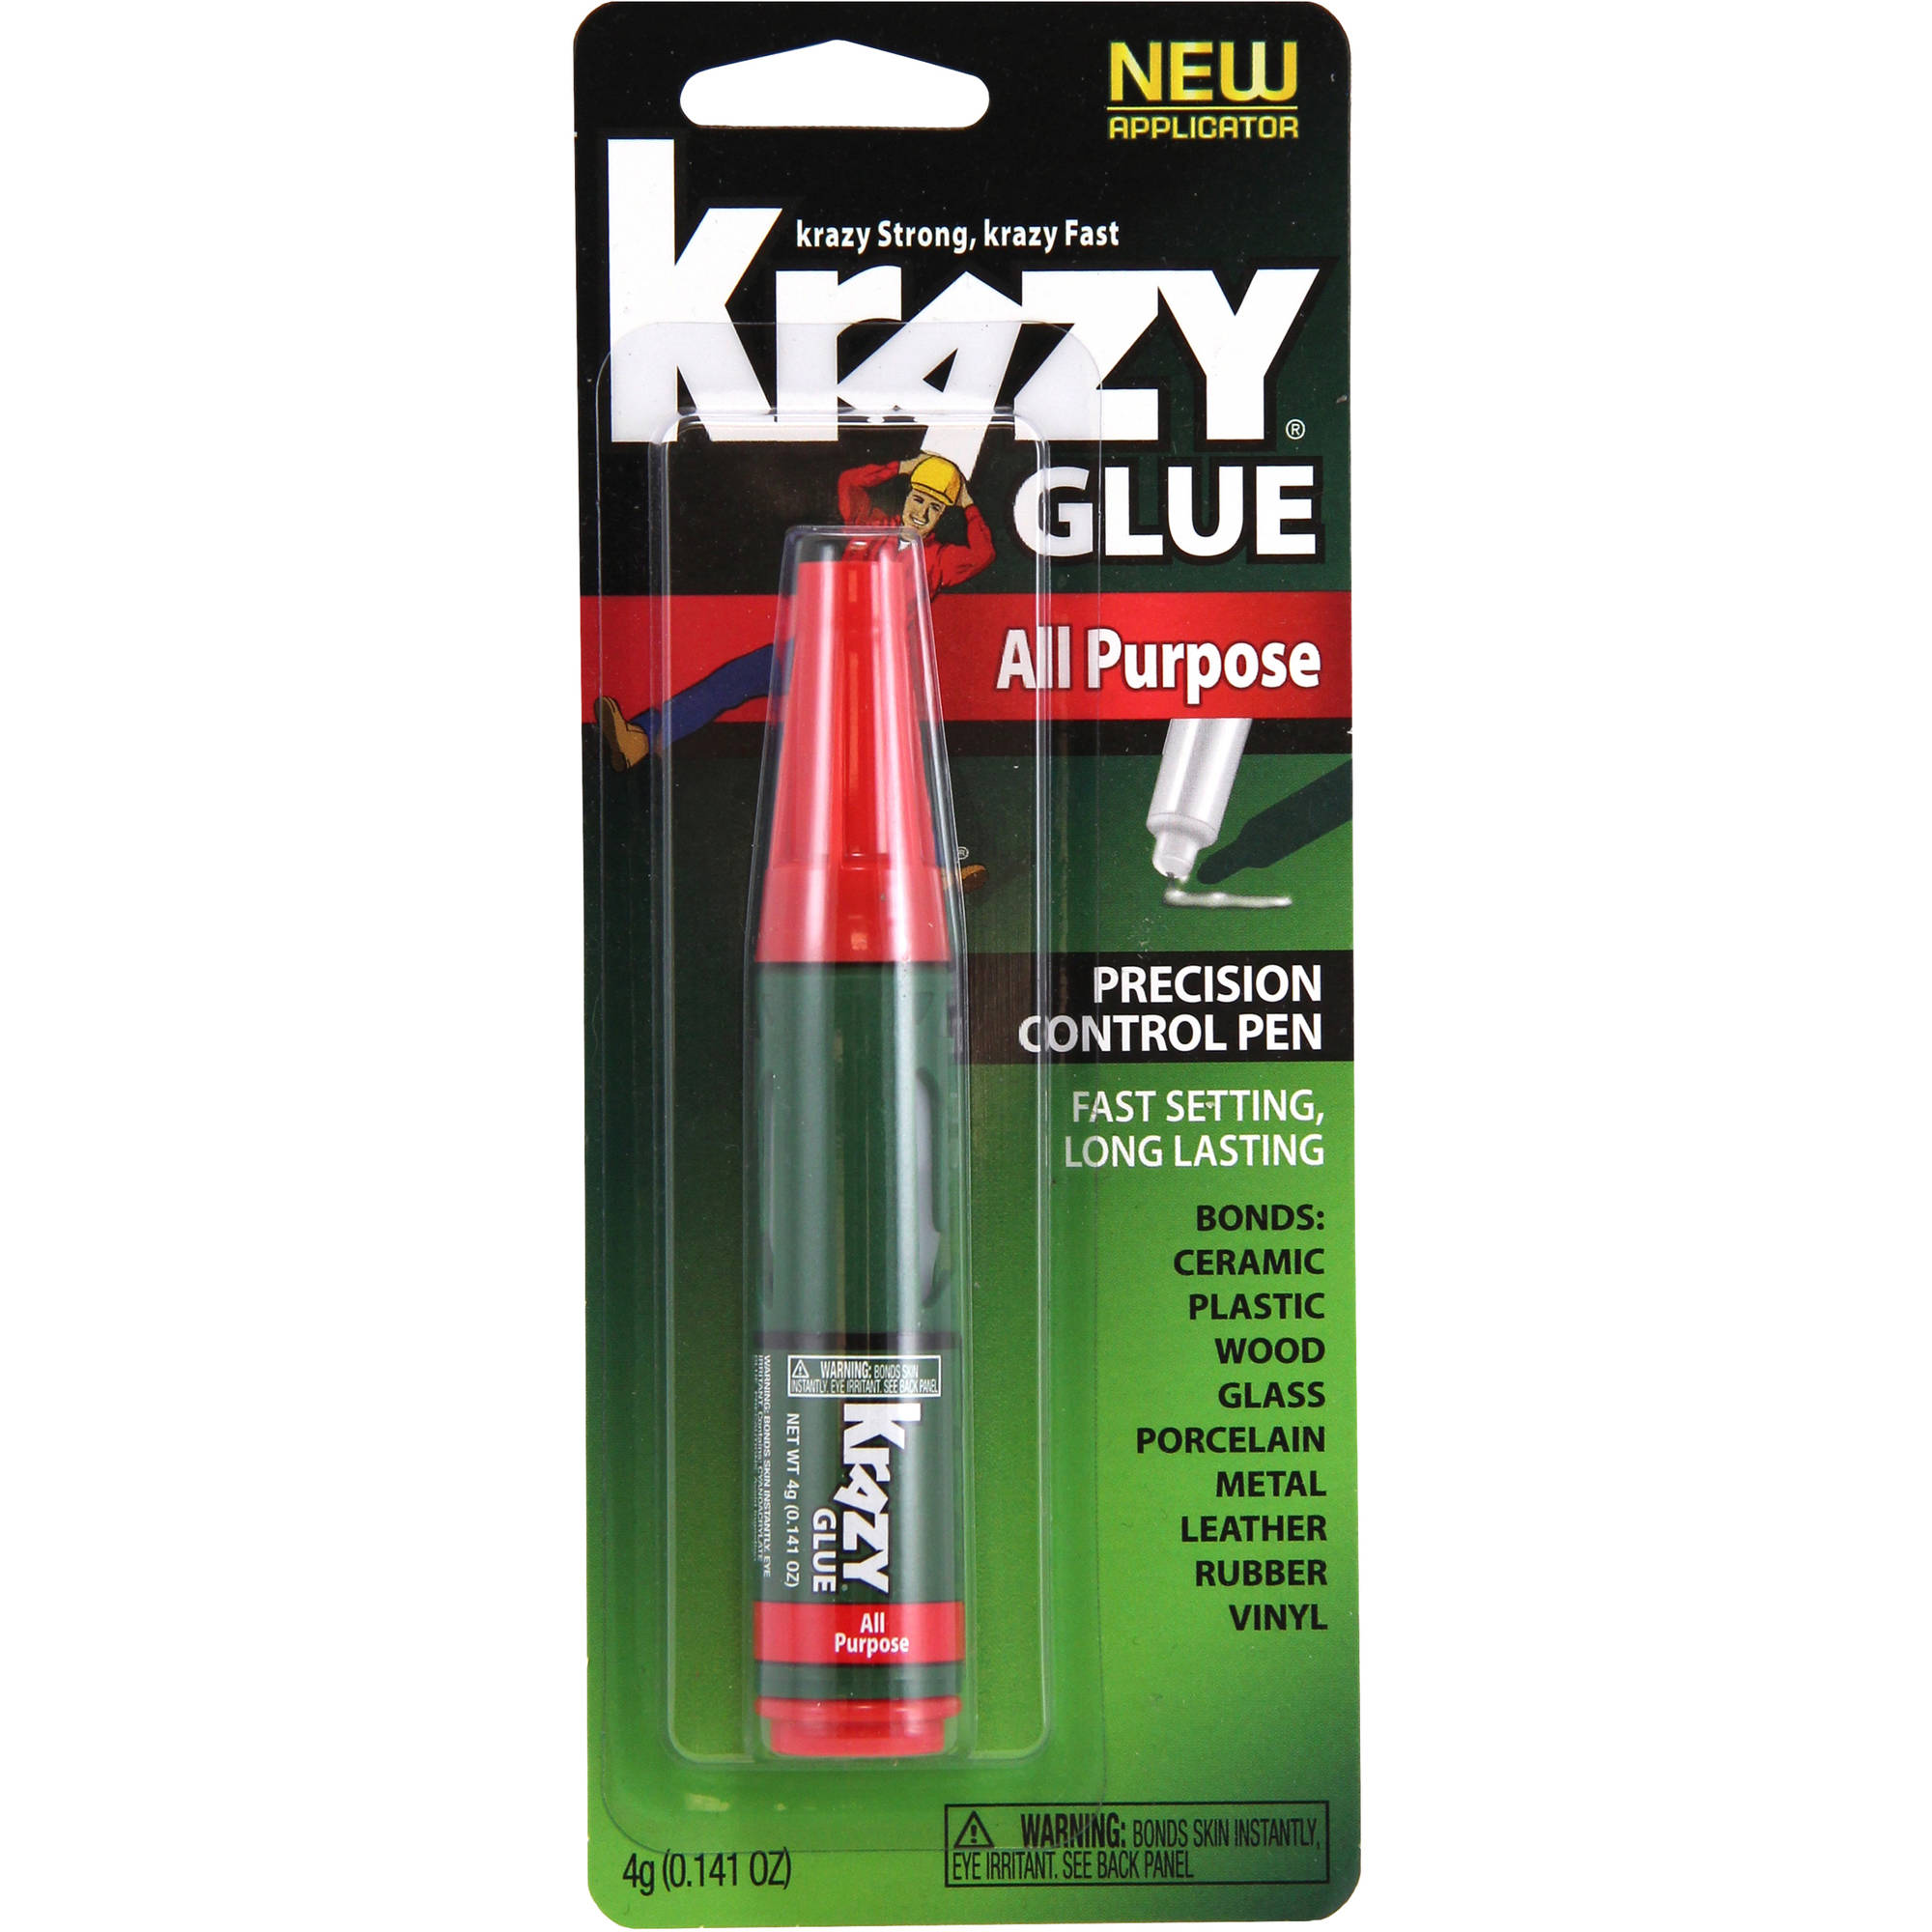 Krazy Glue 4-Gram All-Purpose Pen